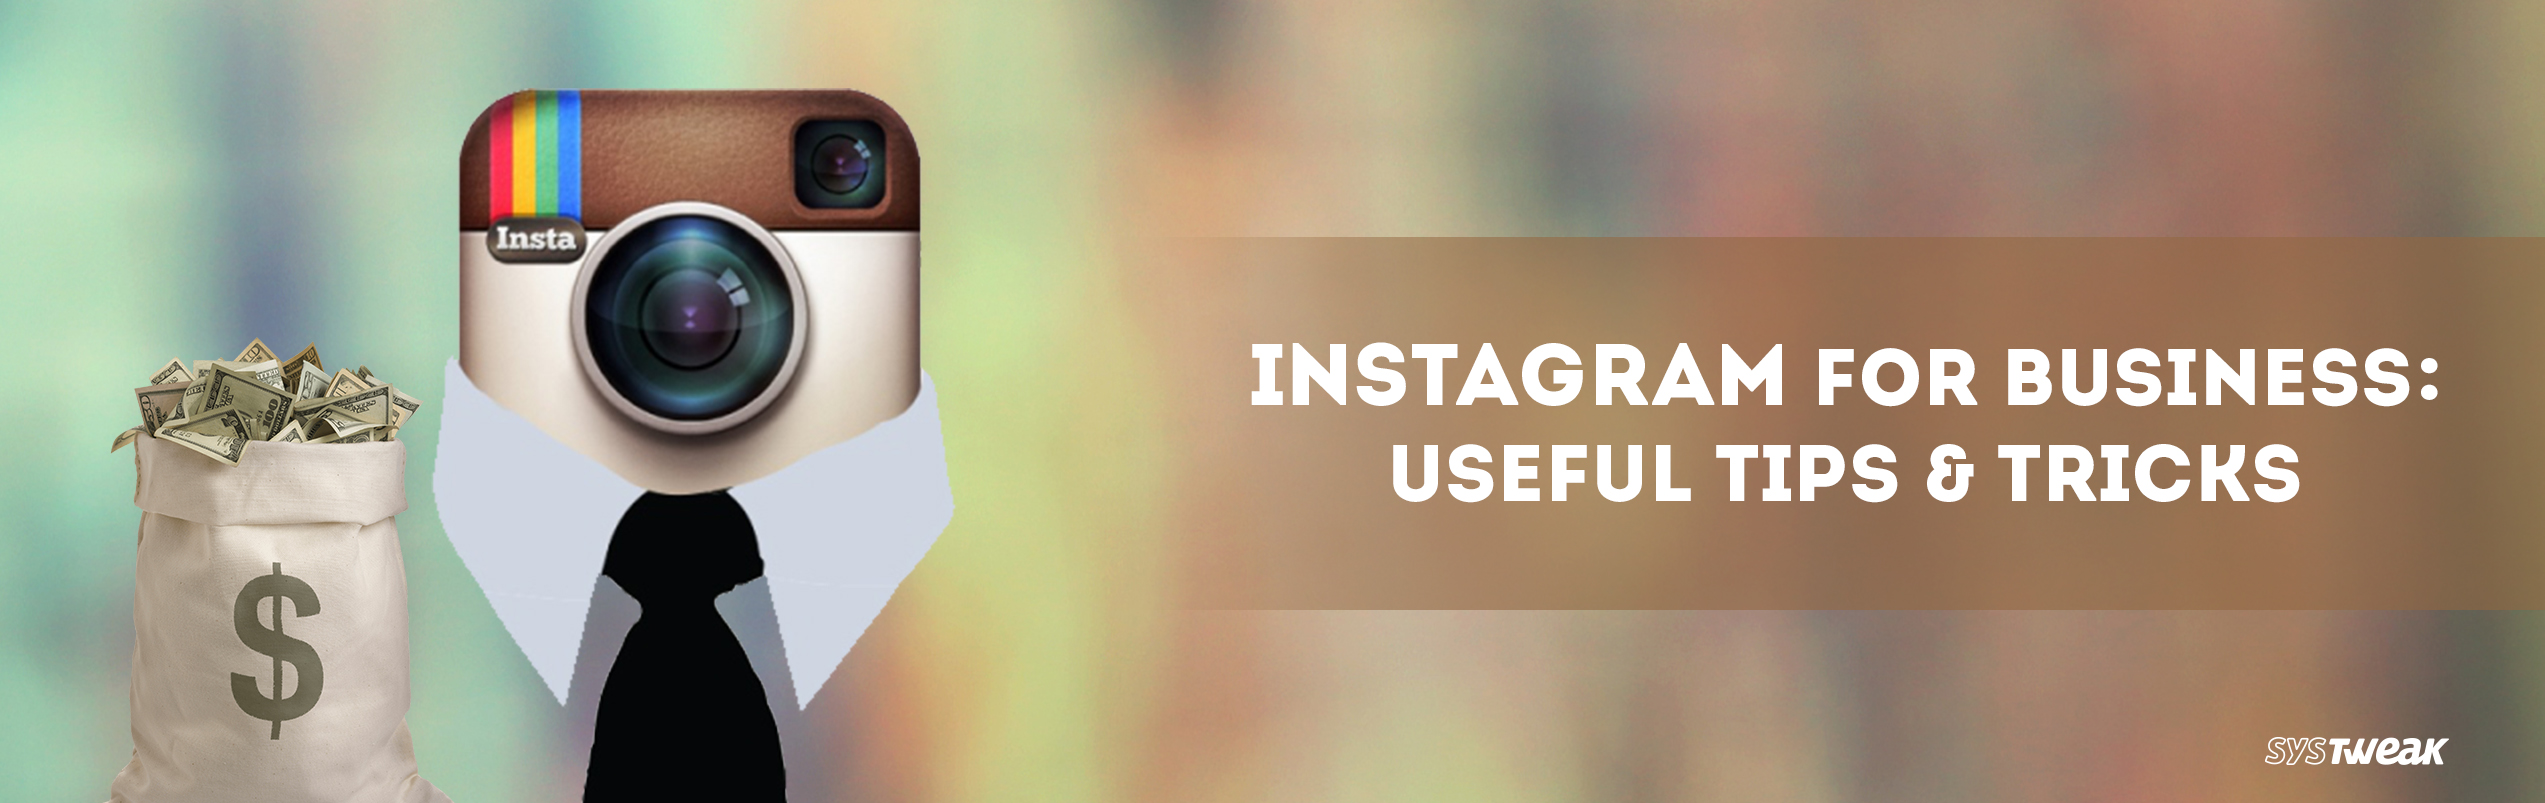 Useful Tips to Use Instagram to Promote Your Business